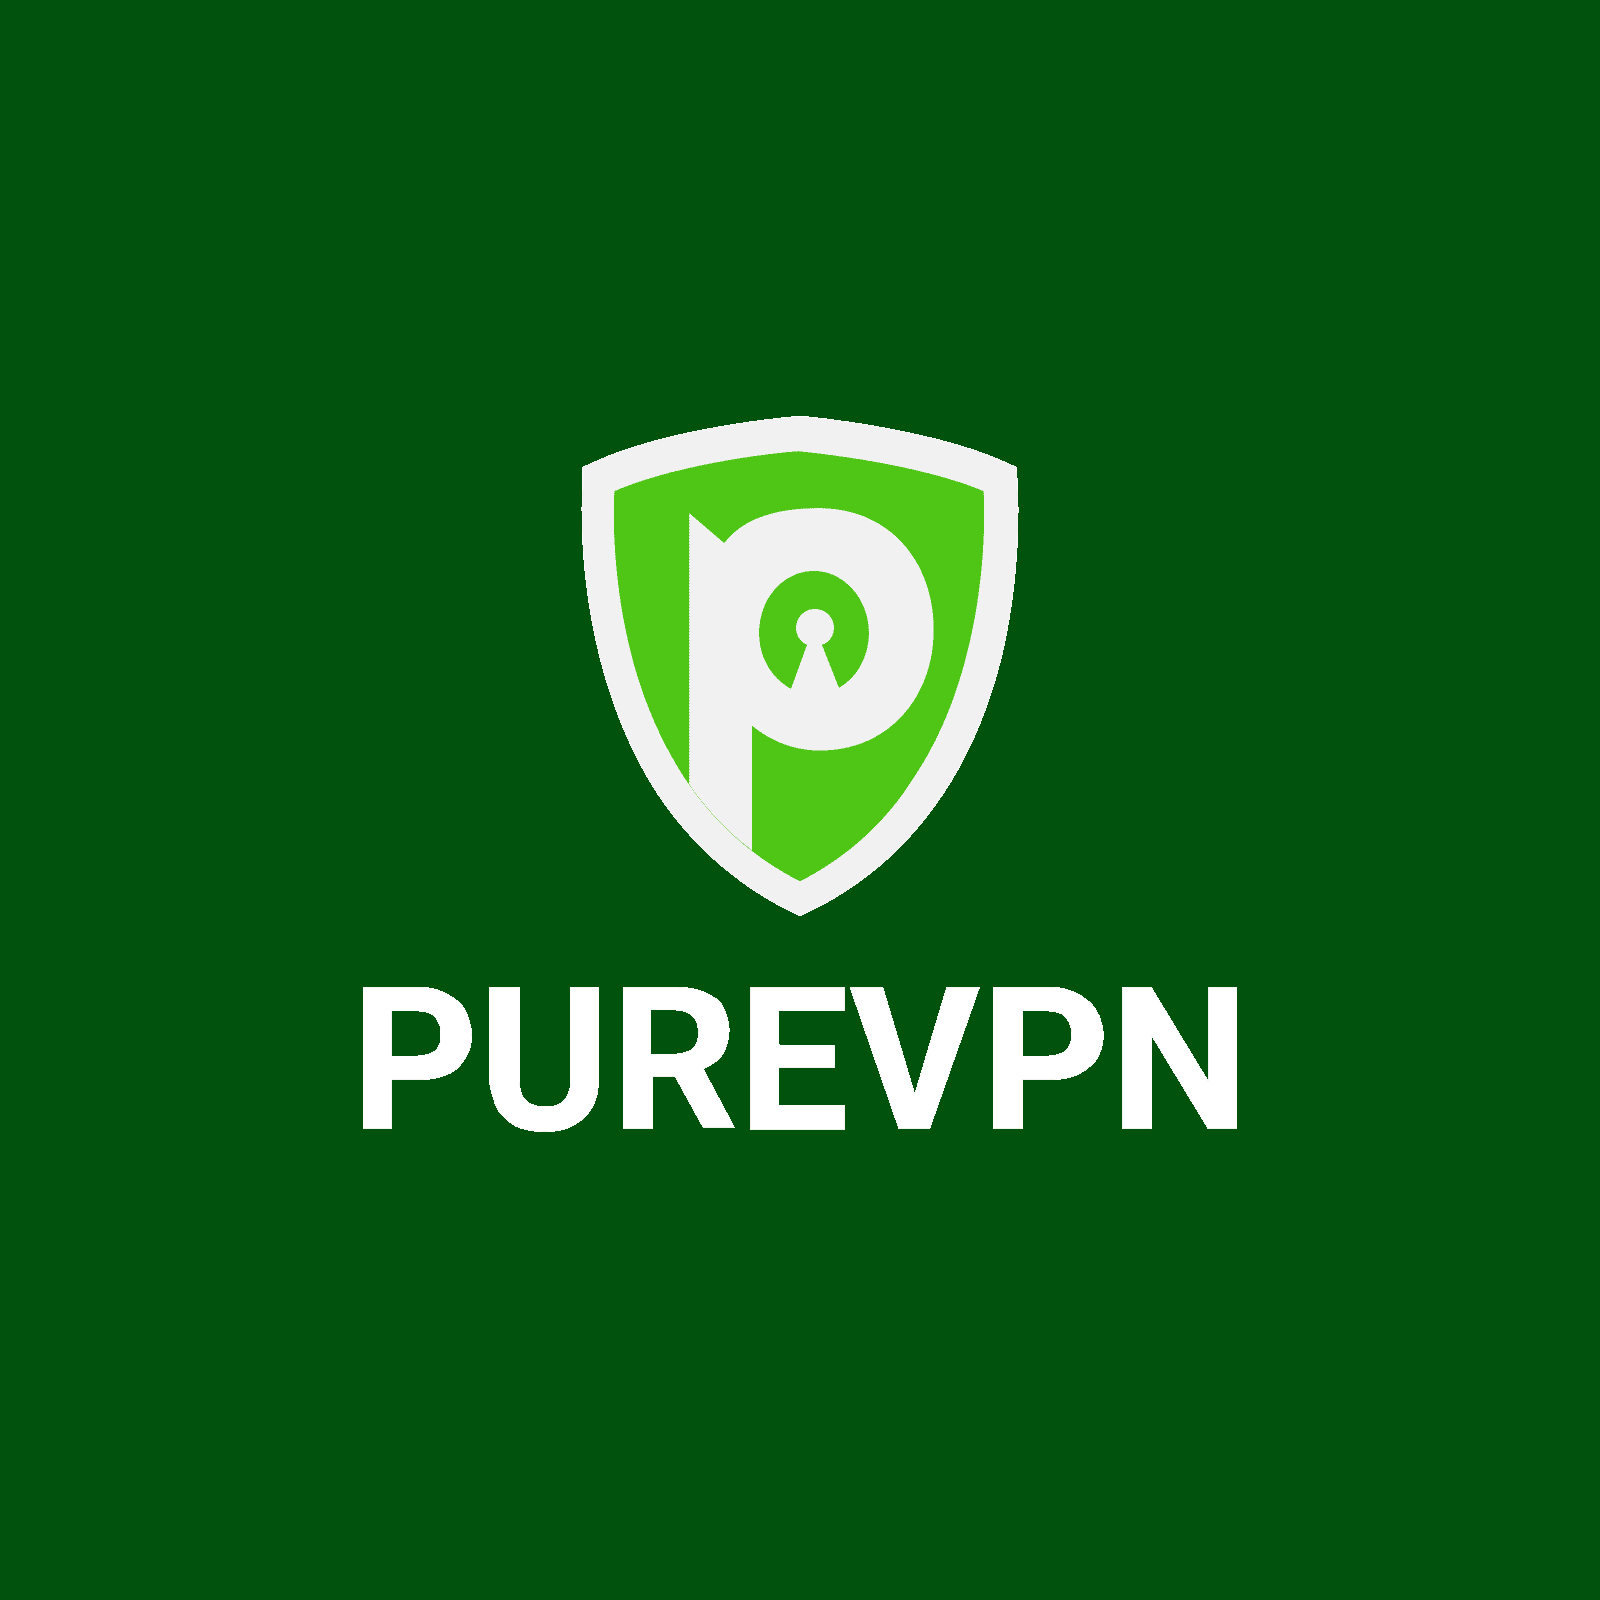 Get Extra 10% OFF on PureVPN 2-Year Subscription with Coupon